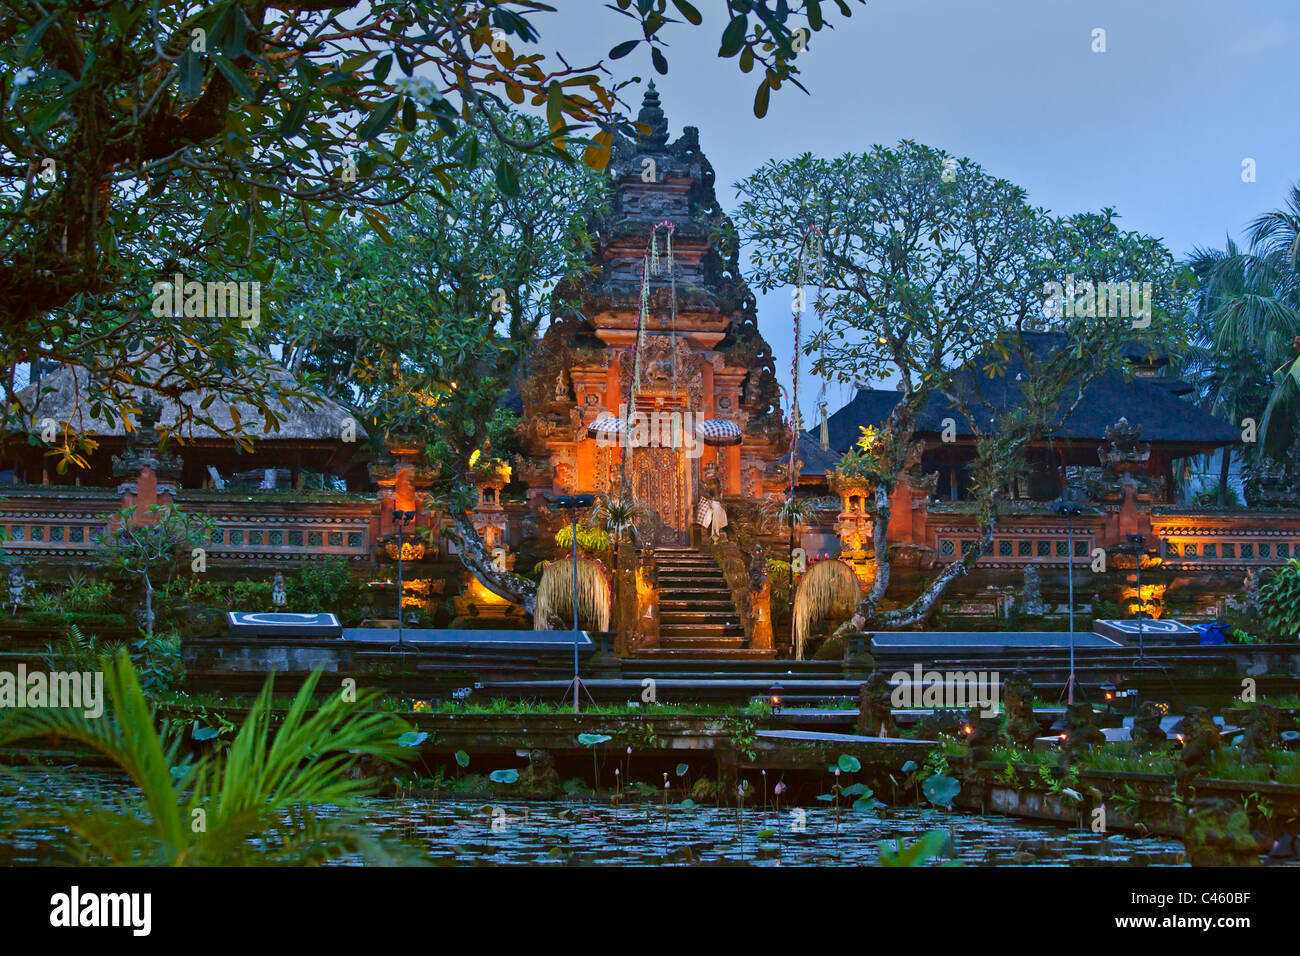 PURA TAMAN SARASWATI known as the UBUD WATER PALACE at dusk - UBUD, BALI, INDONESIA - Stock Image